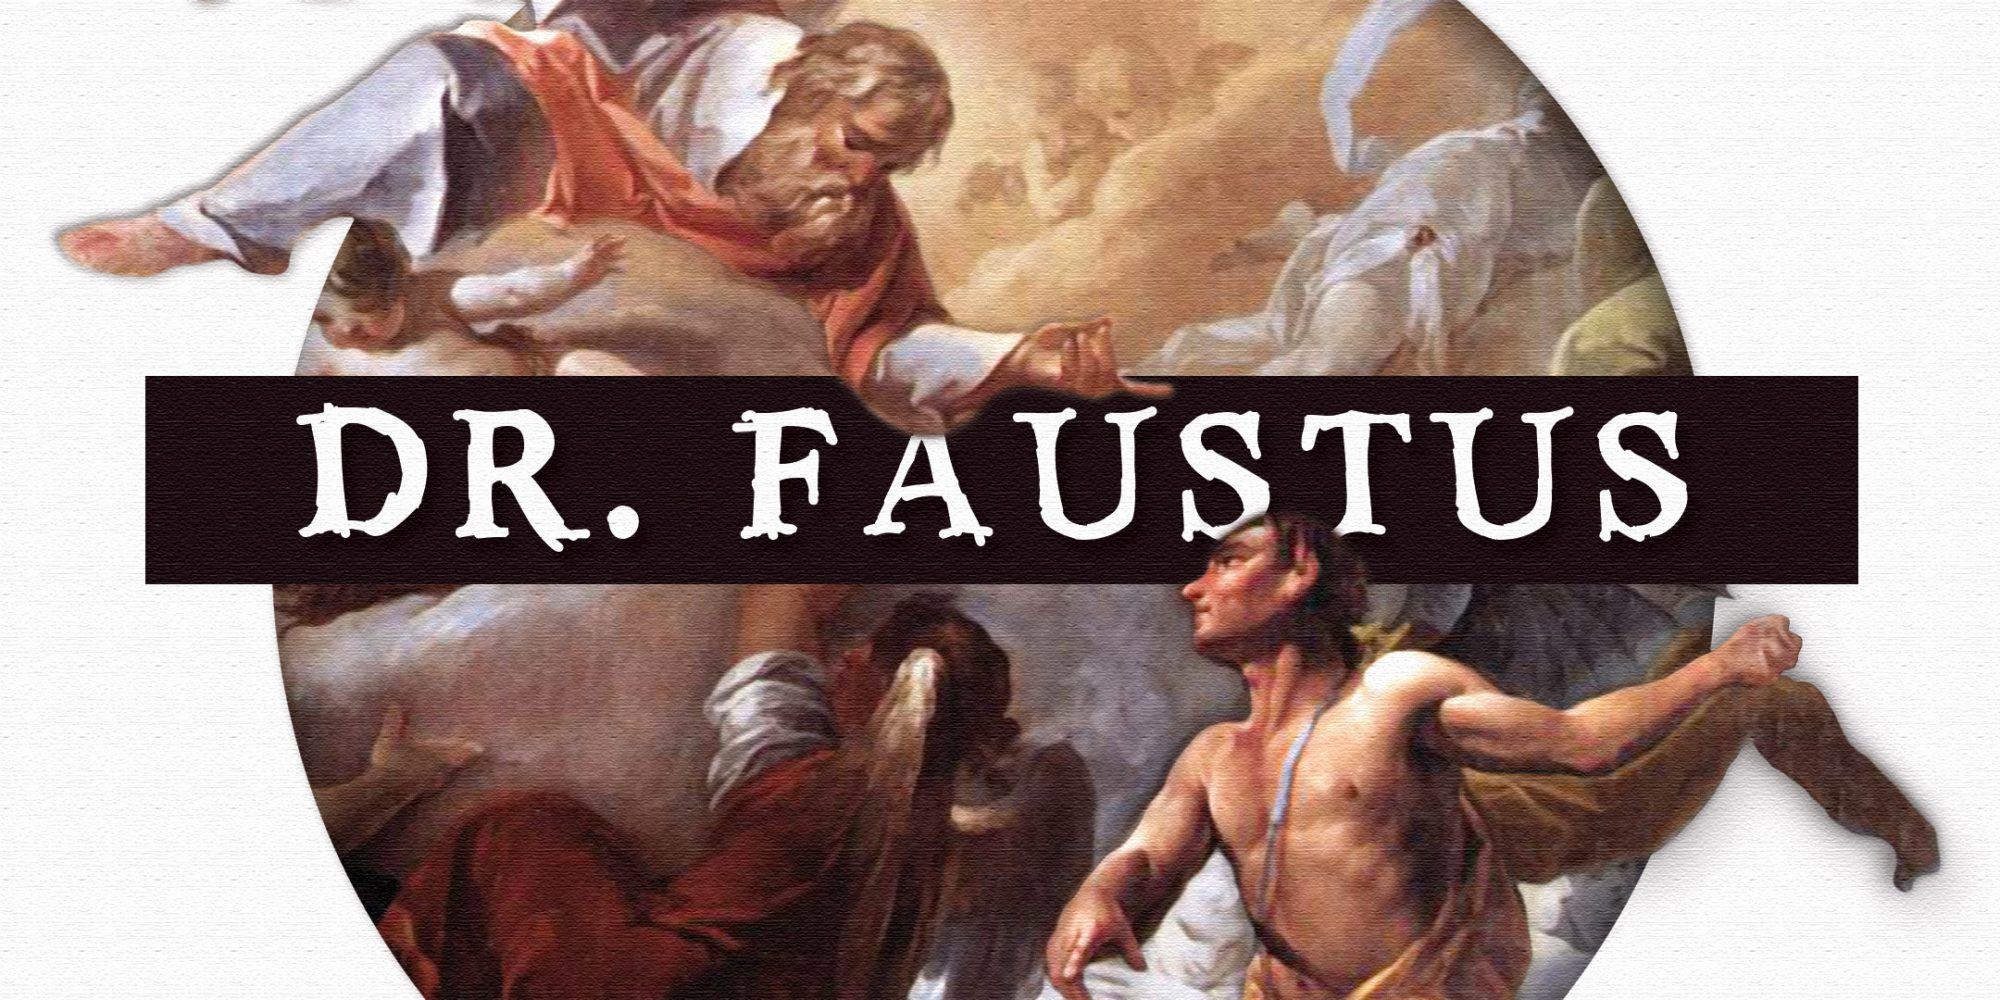 Promotional image for Dr. Faustus play